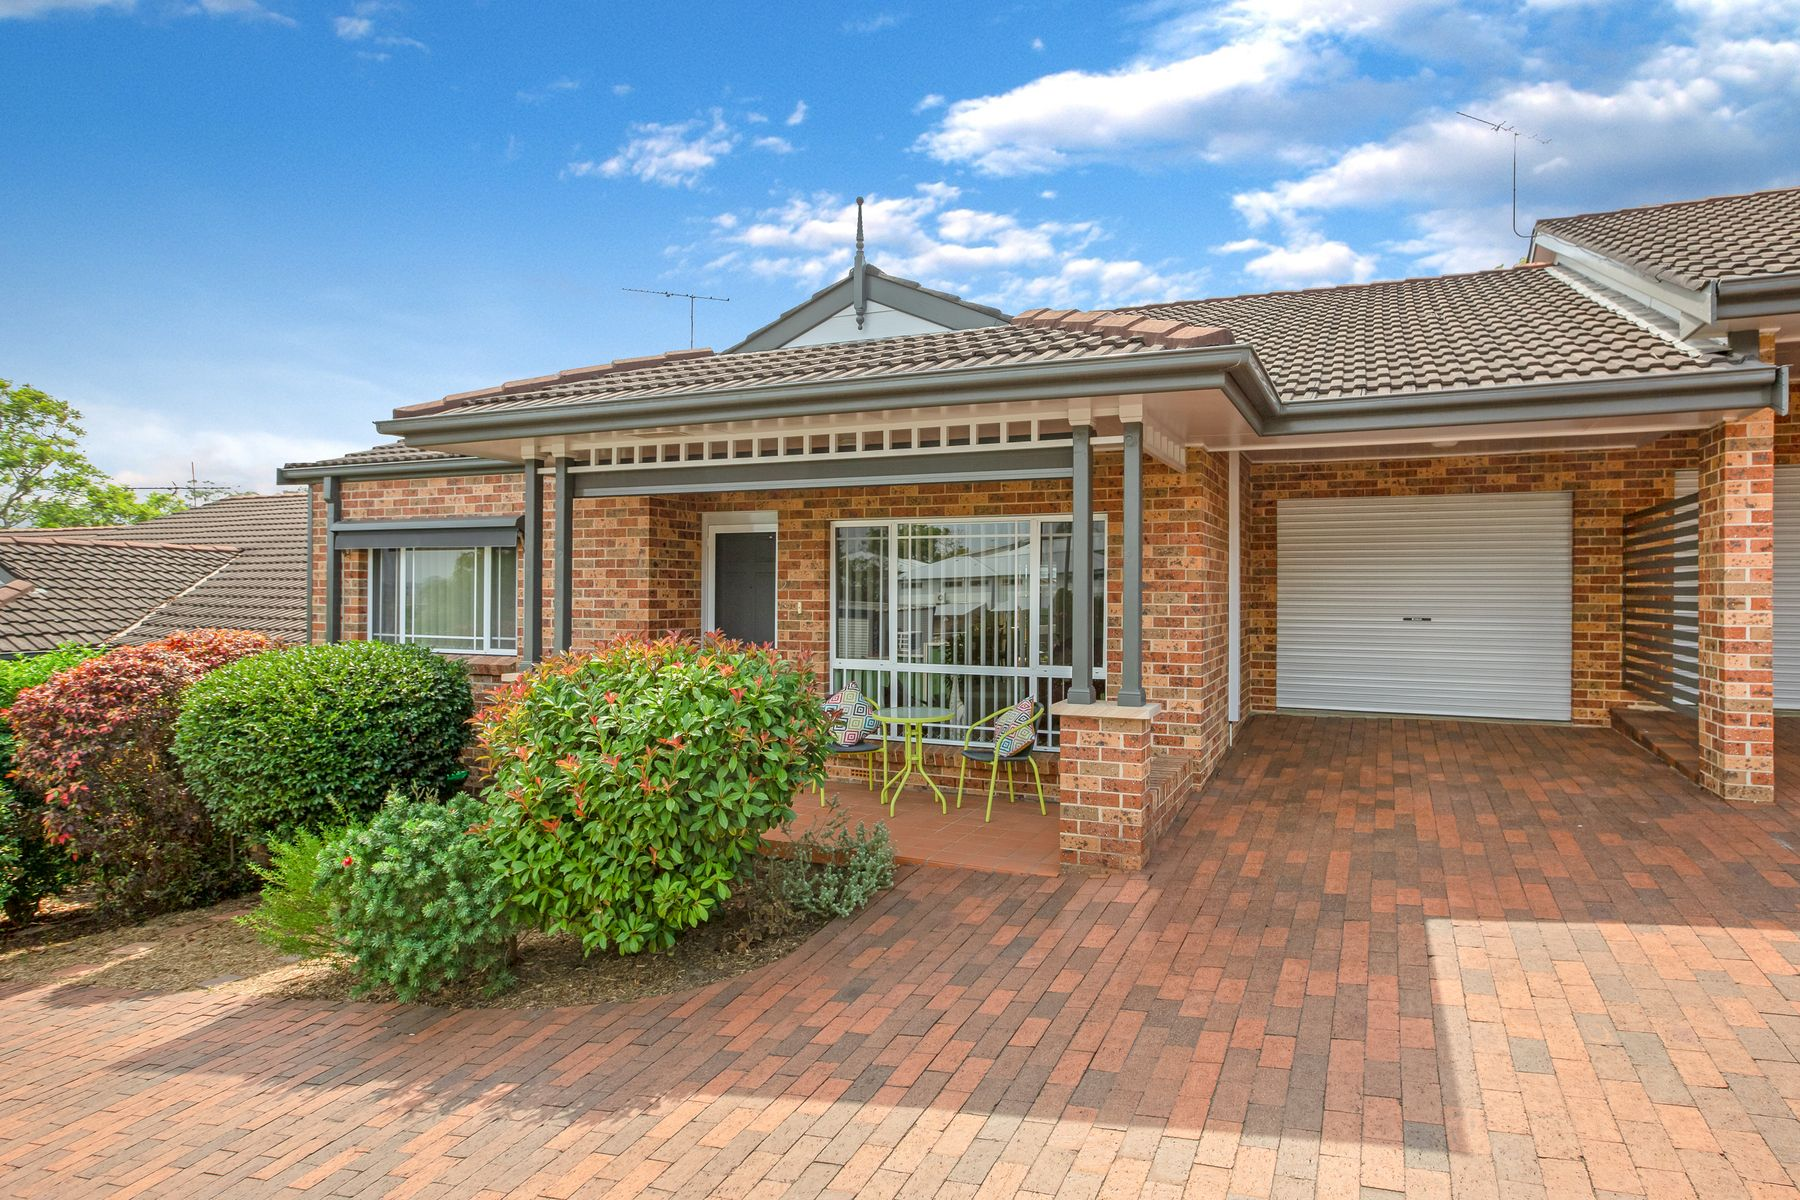 What Does $600,000 Buy In Lake Macquarie, Newcastle Or Maitland?